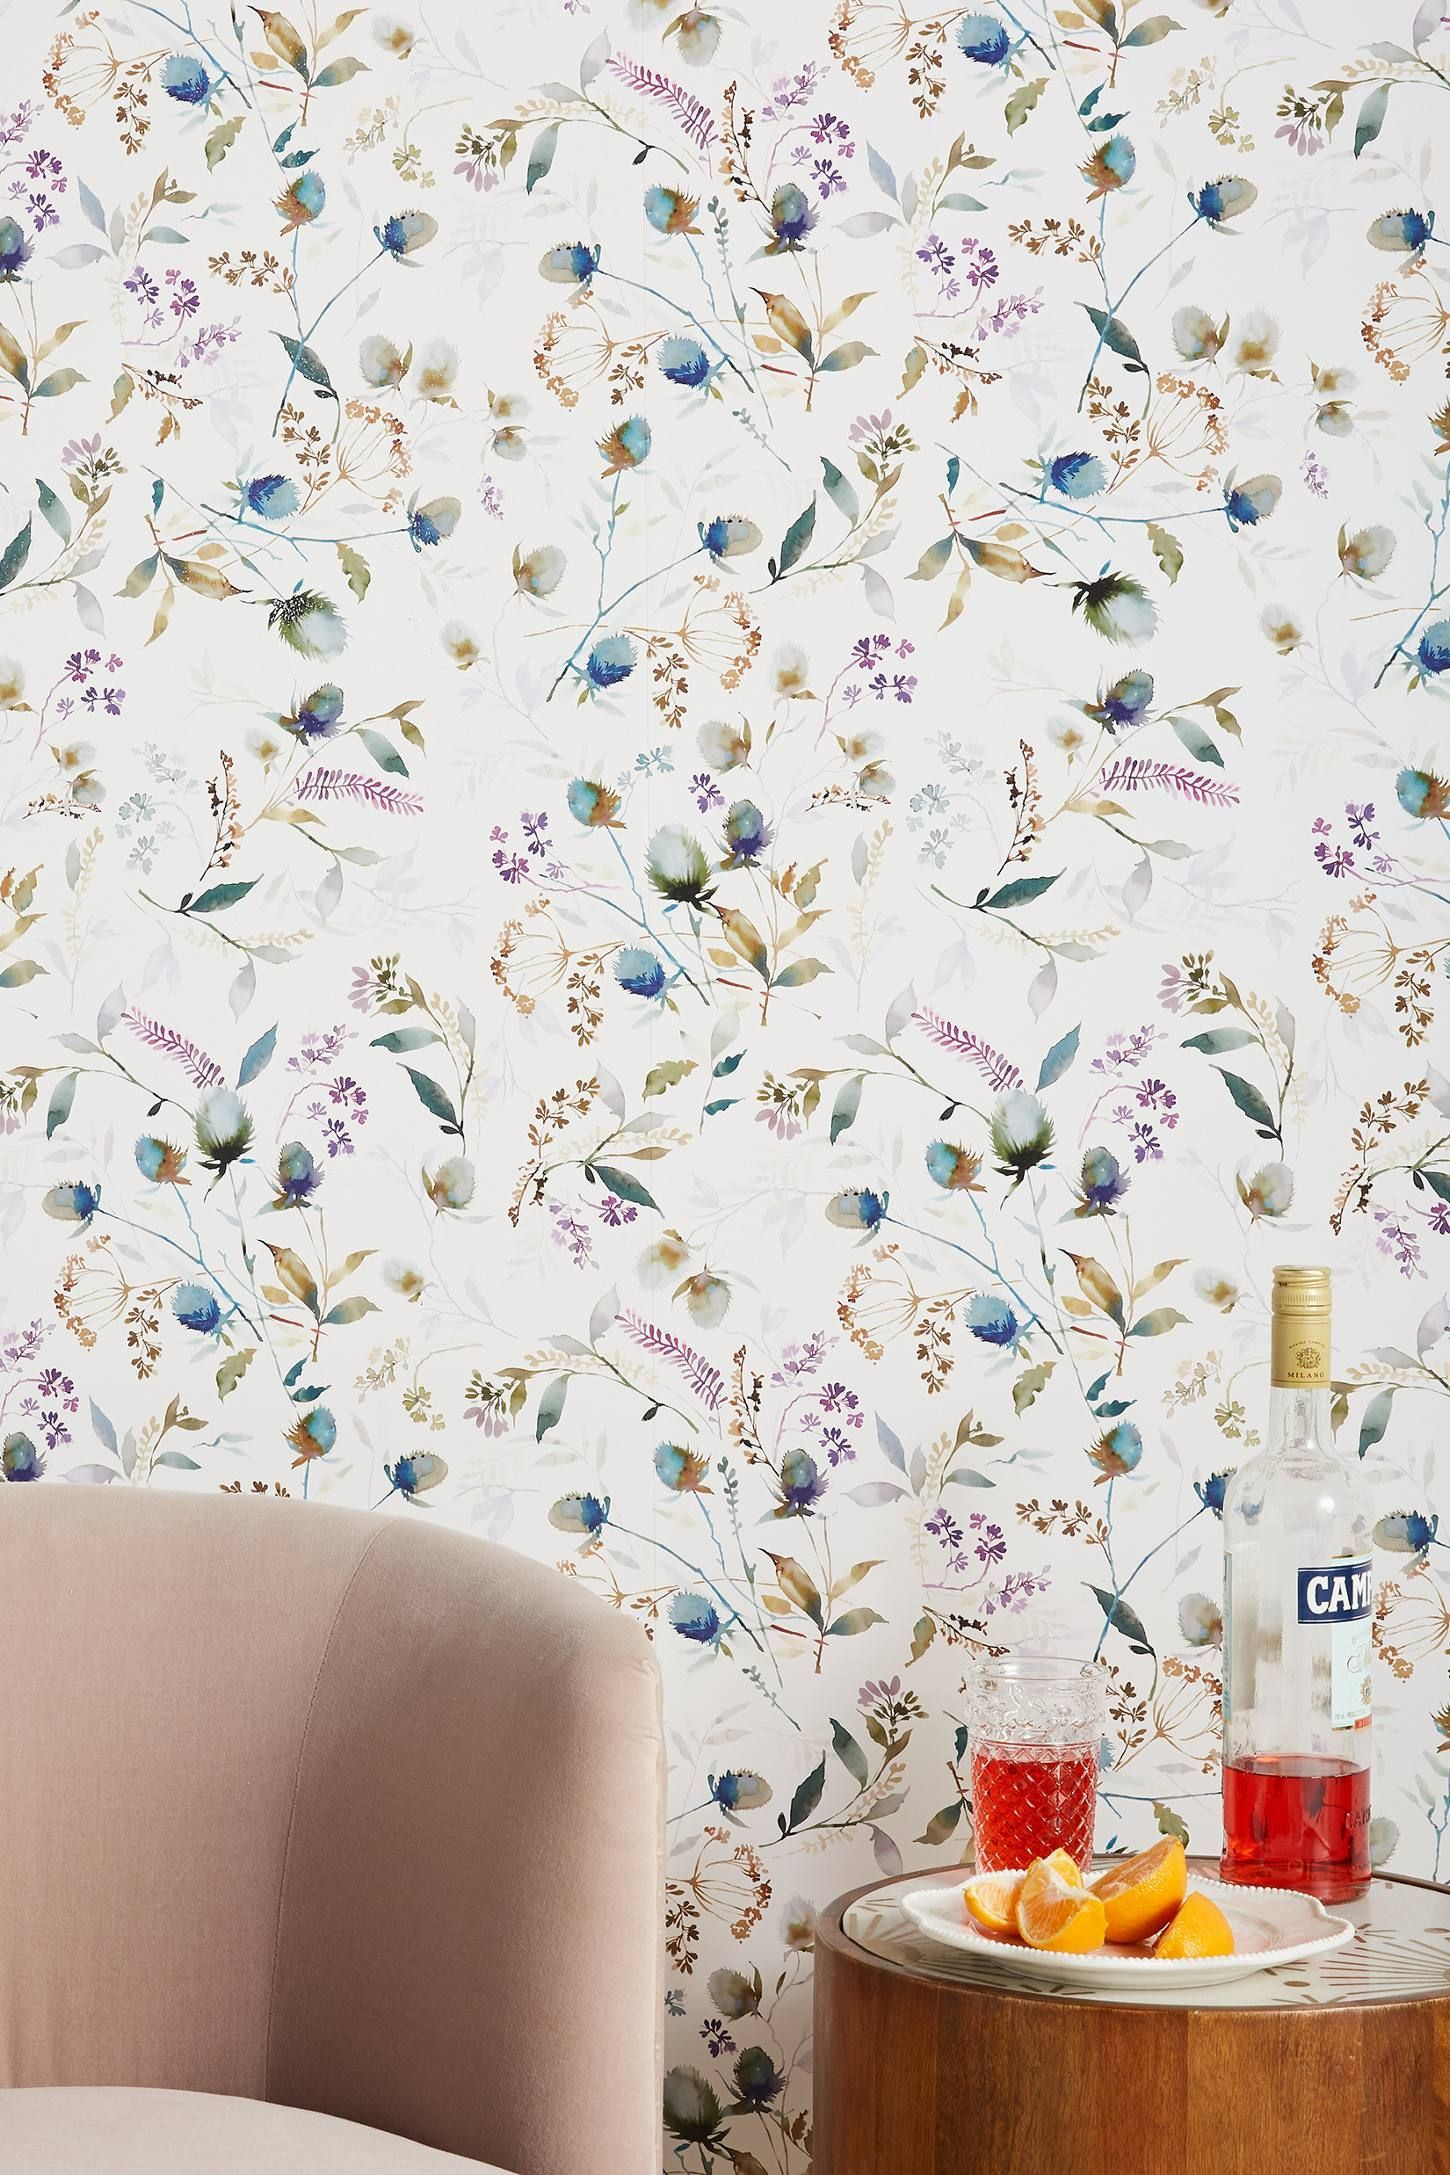 Anthropologie Cillian Wallpaper Anthropologie Floral Wallpaper Wallpaper Manufacturers Wall Coverings